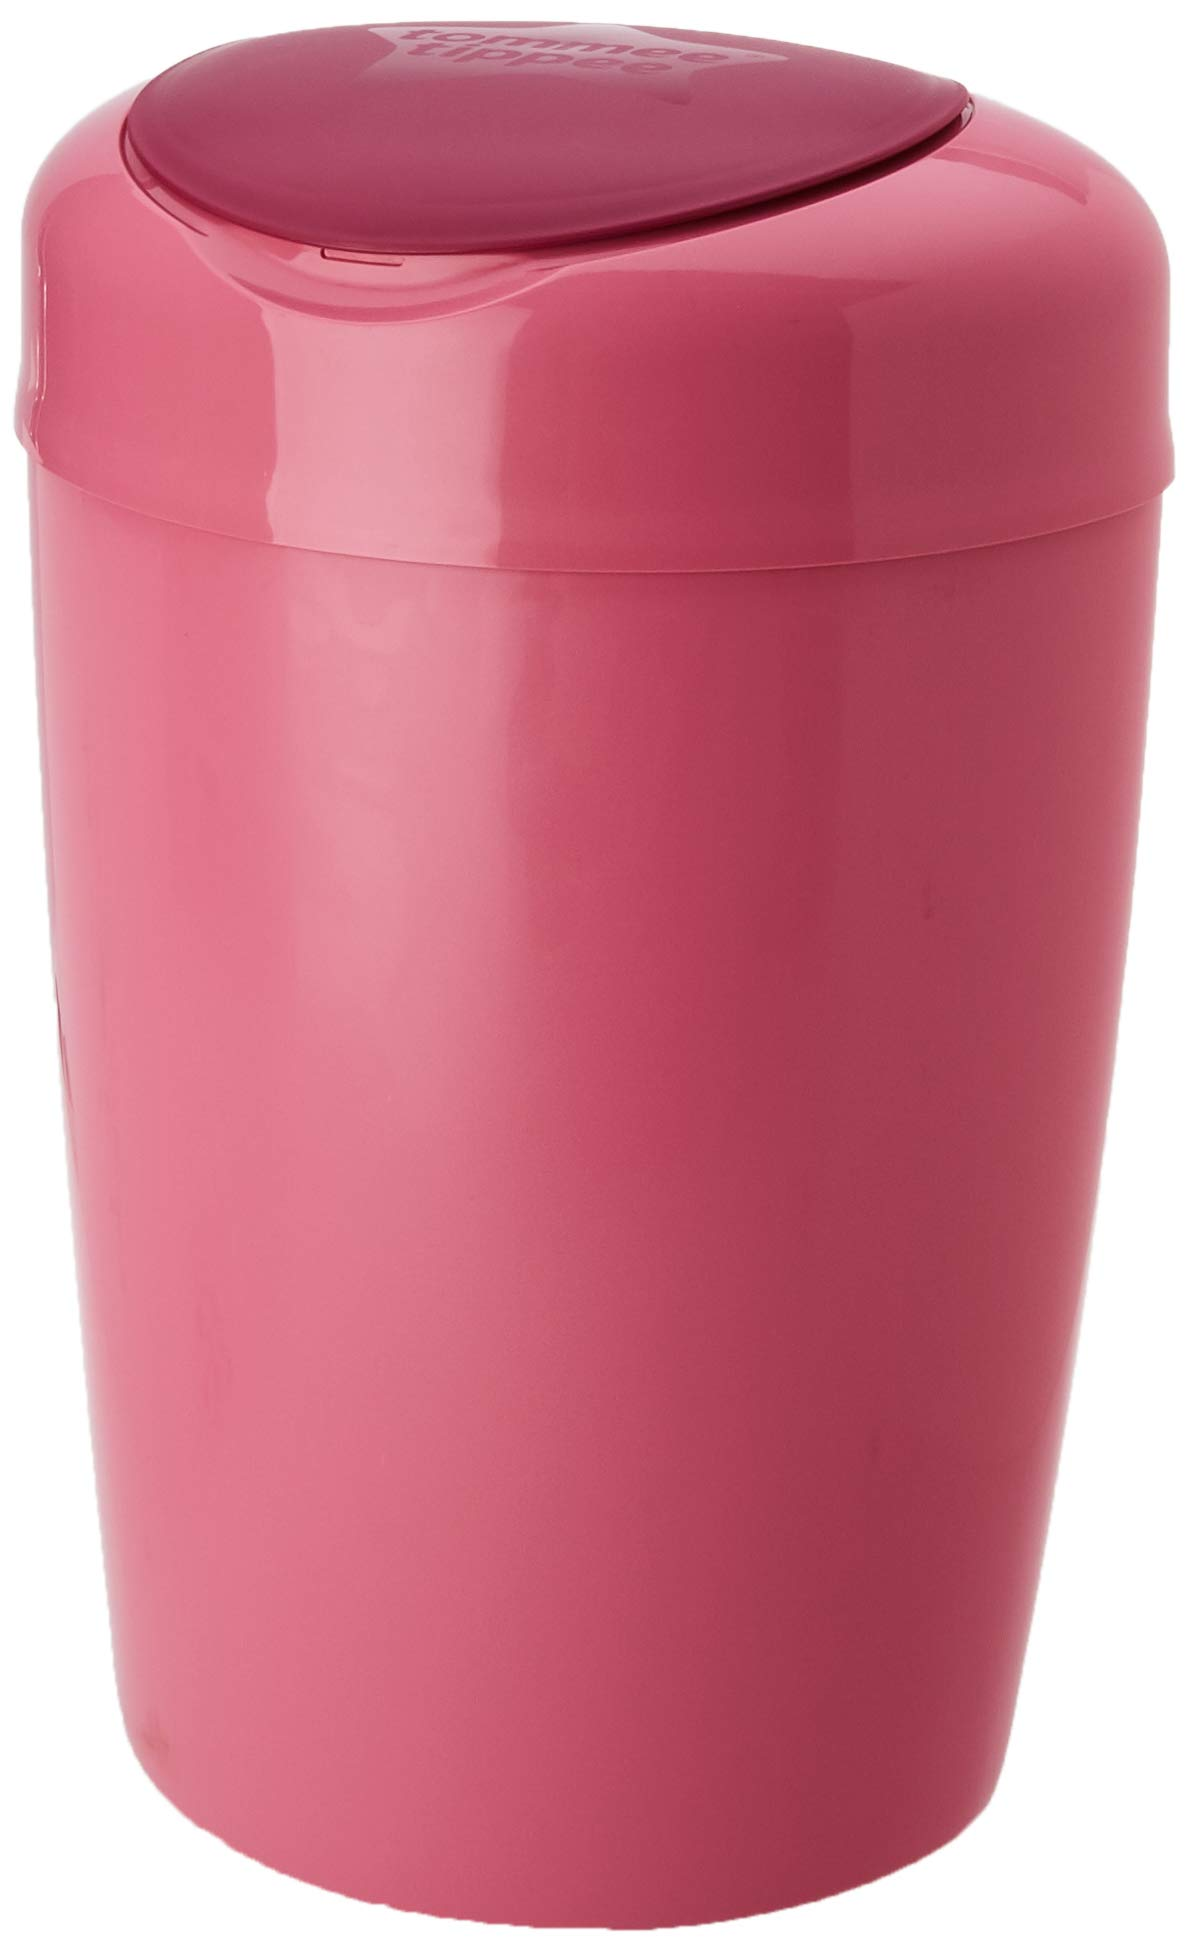 Tommee Tippee Simplee Sangenic - Contenedor de pañales, color rosa product image